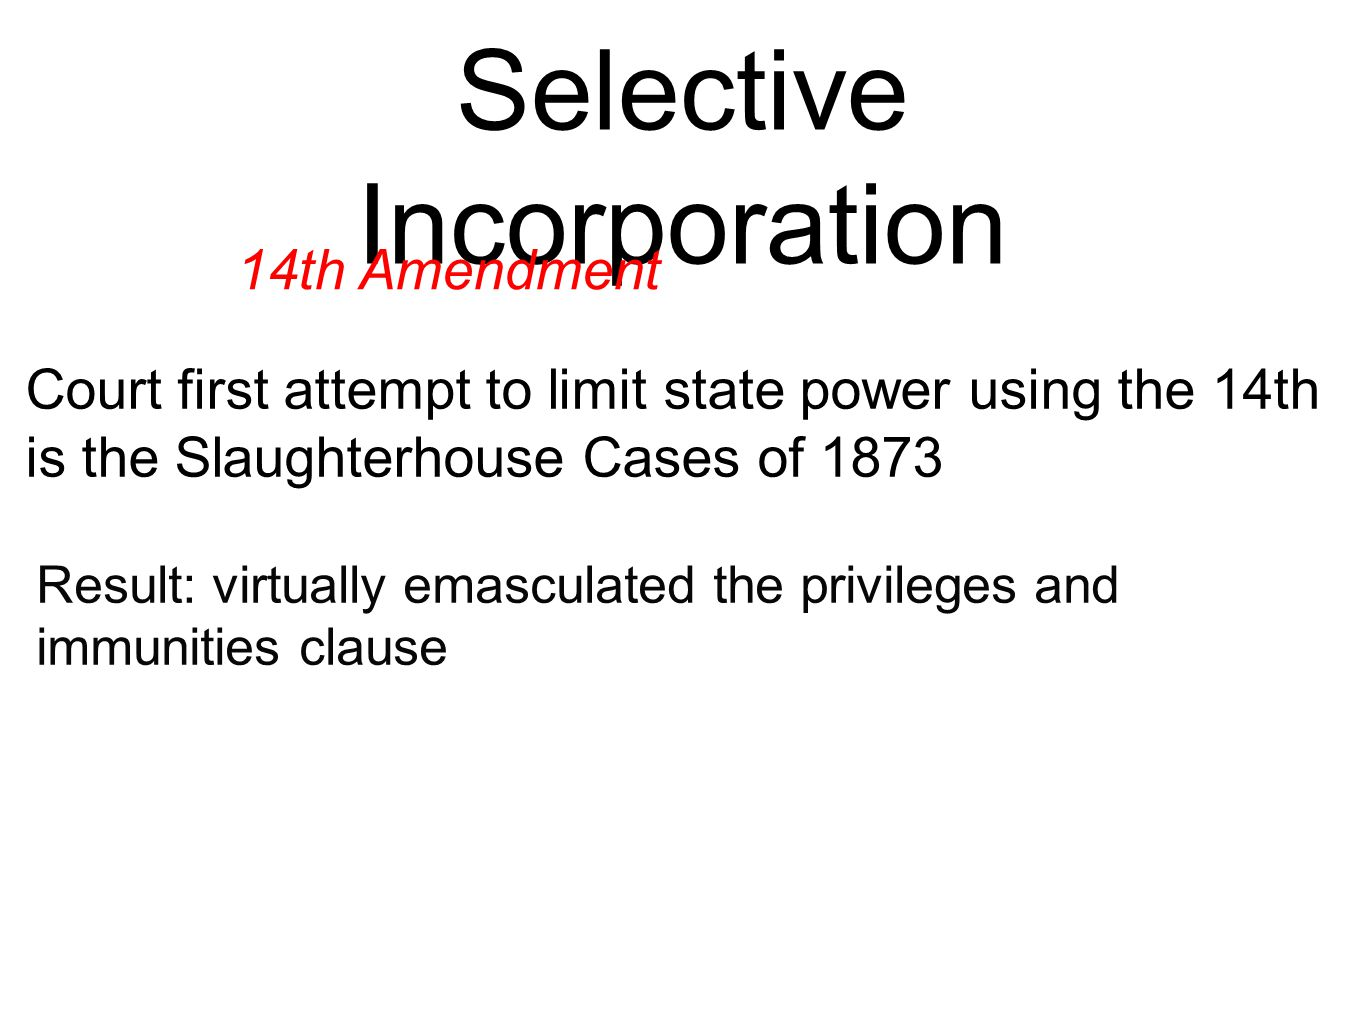 Selective Incorporation 14th Amendment Court first attempt to limit state power using the 14th is the Slaughterhouse Cases of 1873 Result: virtually emasculated the privileges and immunities clause